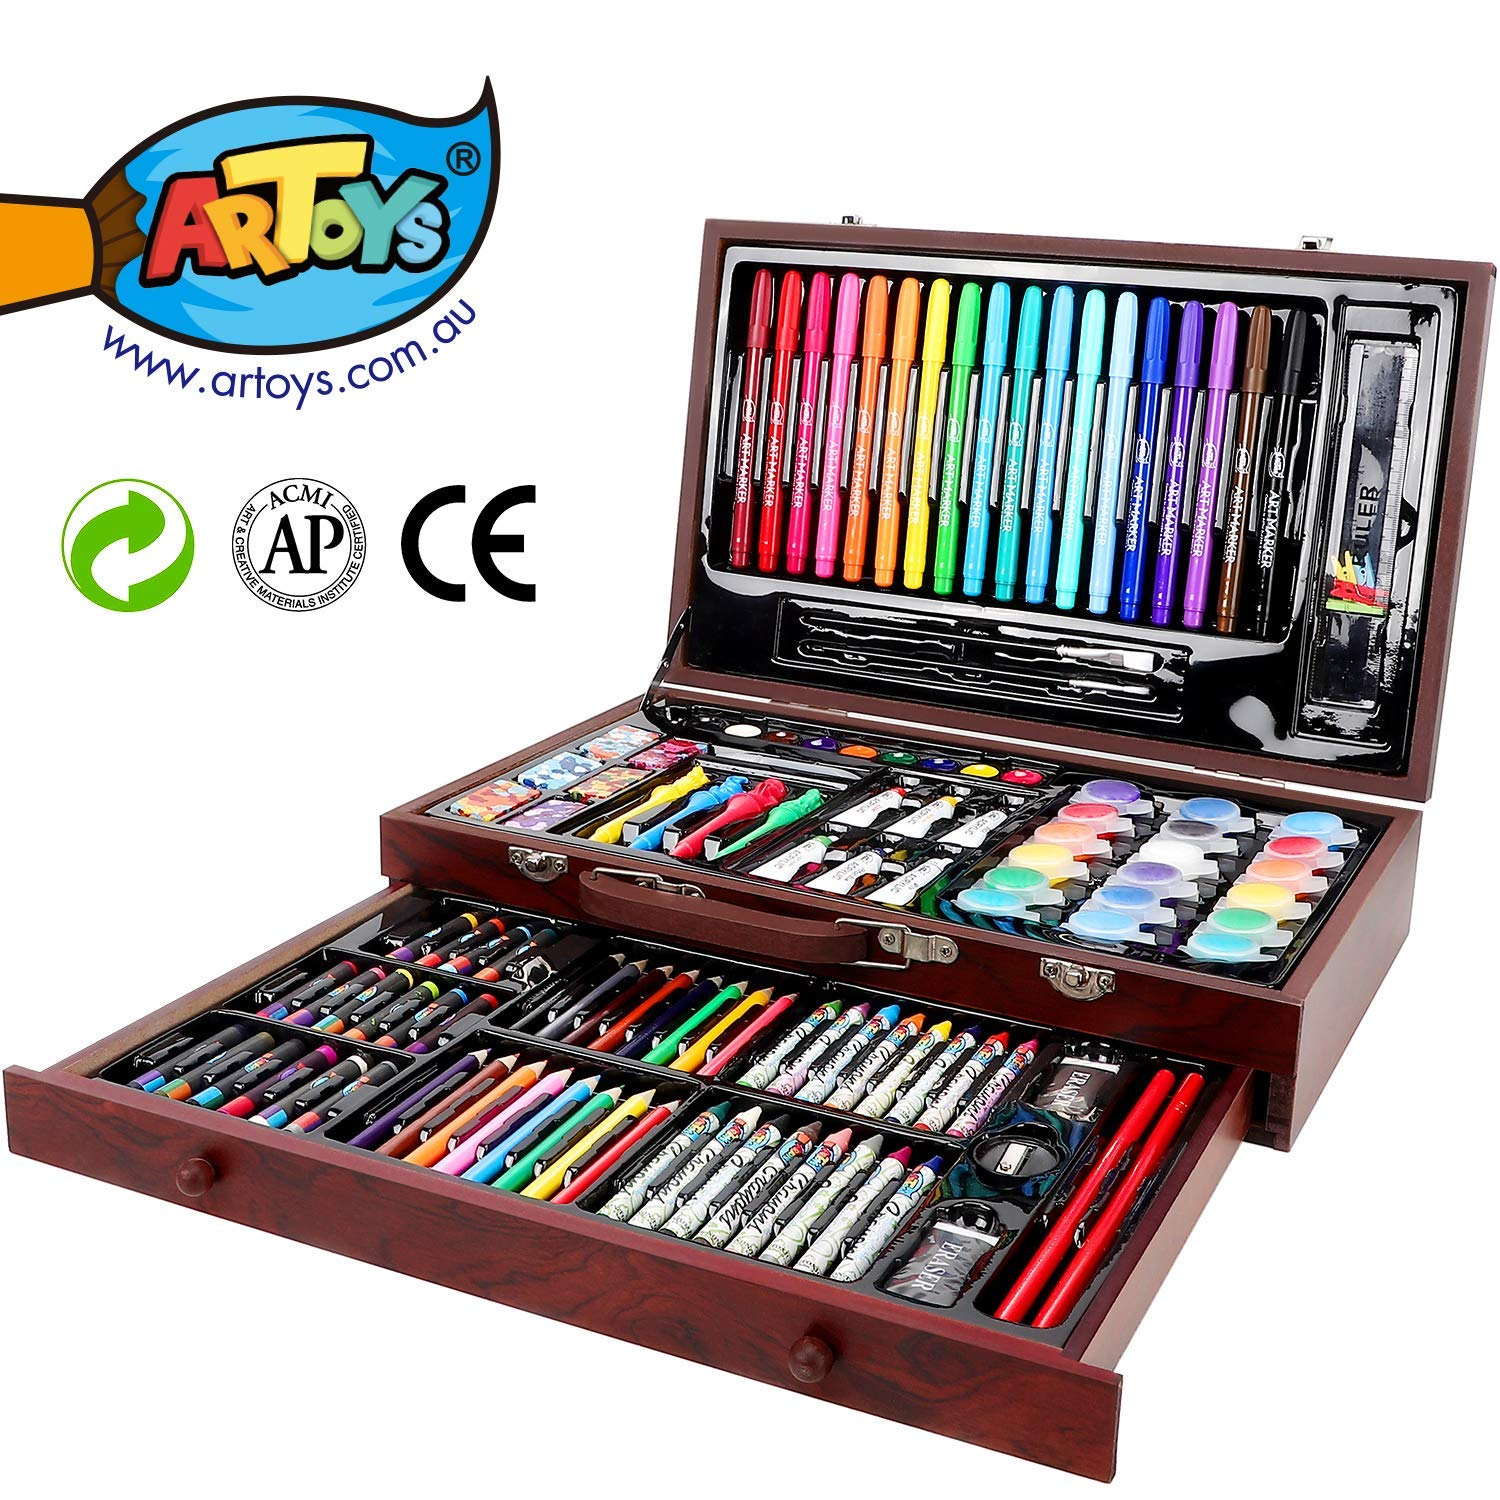 ARTOYS Art Set Kids 123 Piece Drawing Painting Set Artist Kit,Crayon Set,Watercolor Paint Set,Colored Pencils,Marker Pens,Oil Pastels,Acrylic Paint,Portable Art Wood Case,Gifts for Kids Teens Adults by ARTOYS